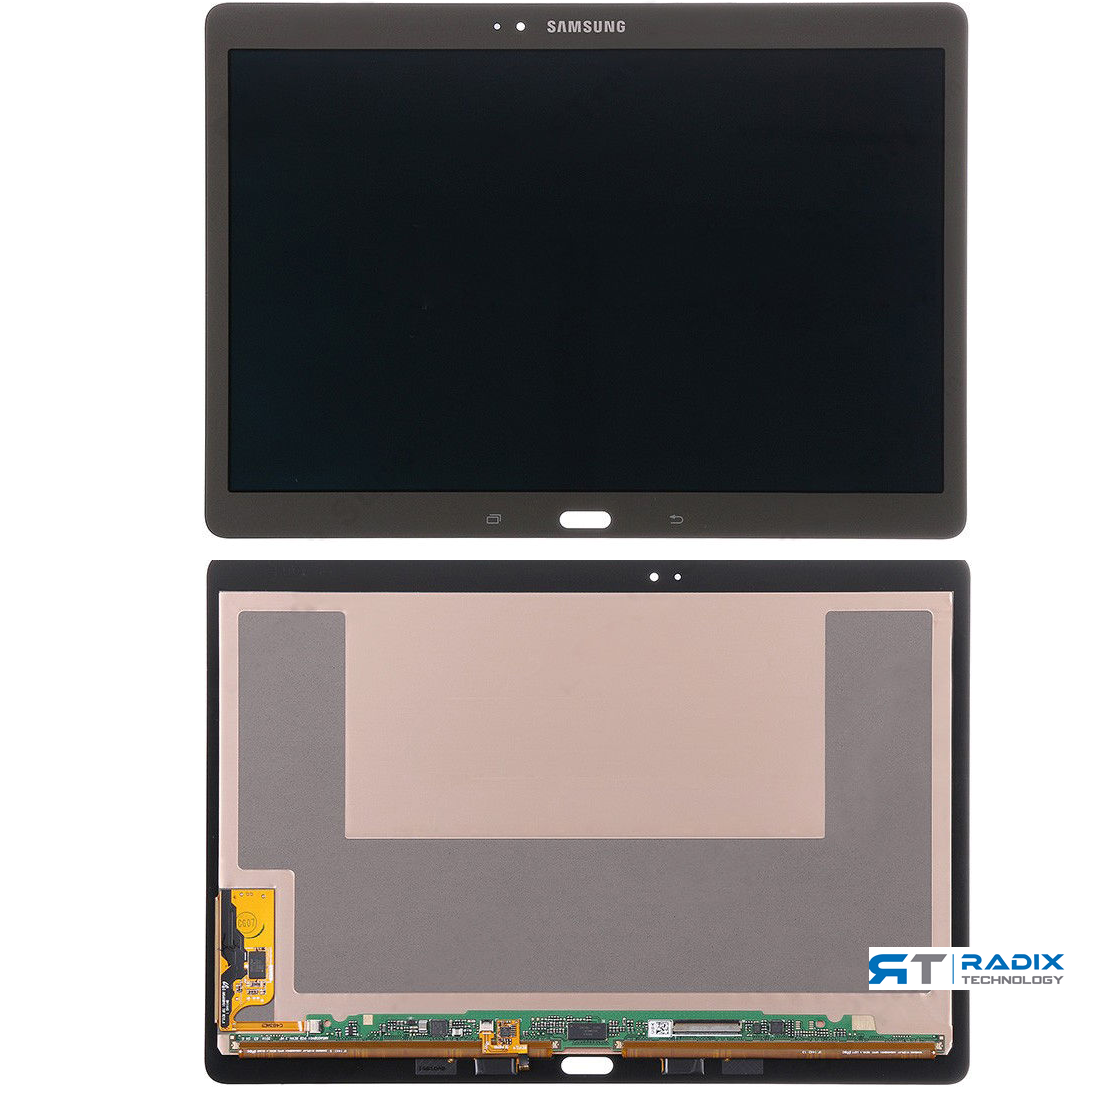 White SM-T800, SM-T805, SM-T807, SM-T807P, SM-T807V GV+ Performance Group Vertical Replacement Screen LCD Digitizer Assembly Compatible with Samsung Galaxy Tab S 10.5